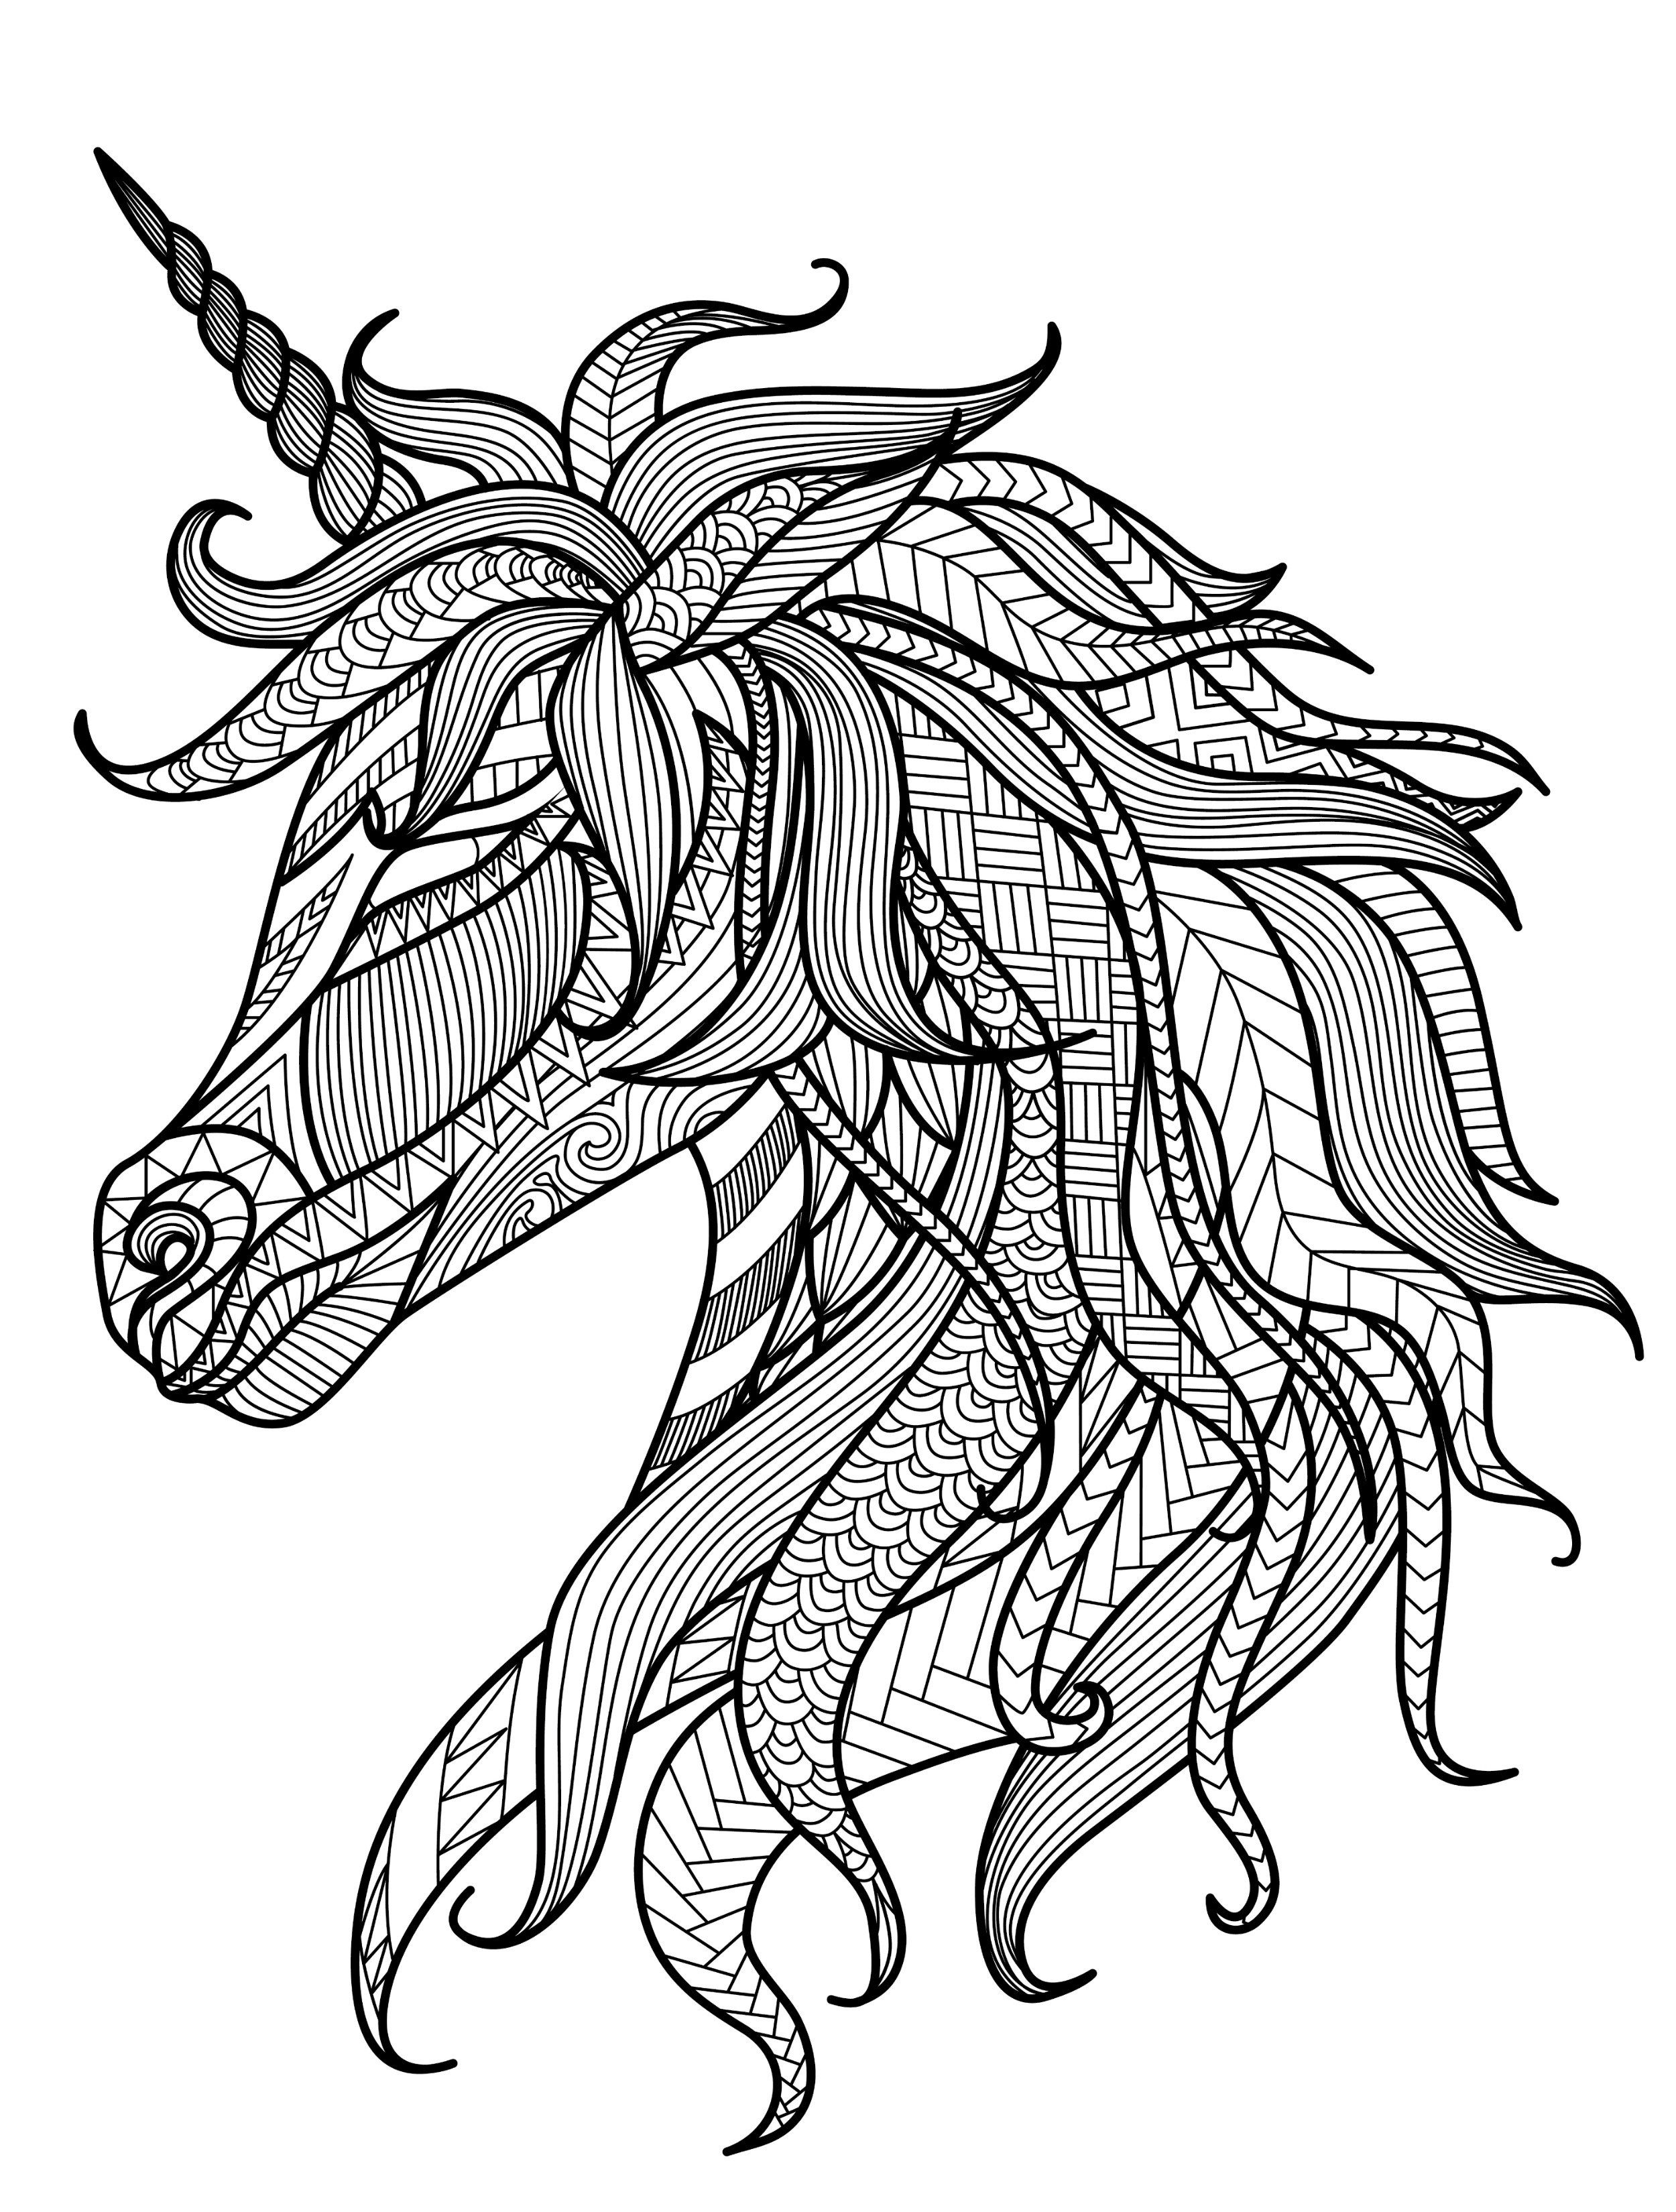 Unicorn Adult Coloring Page